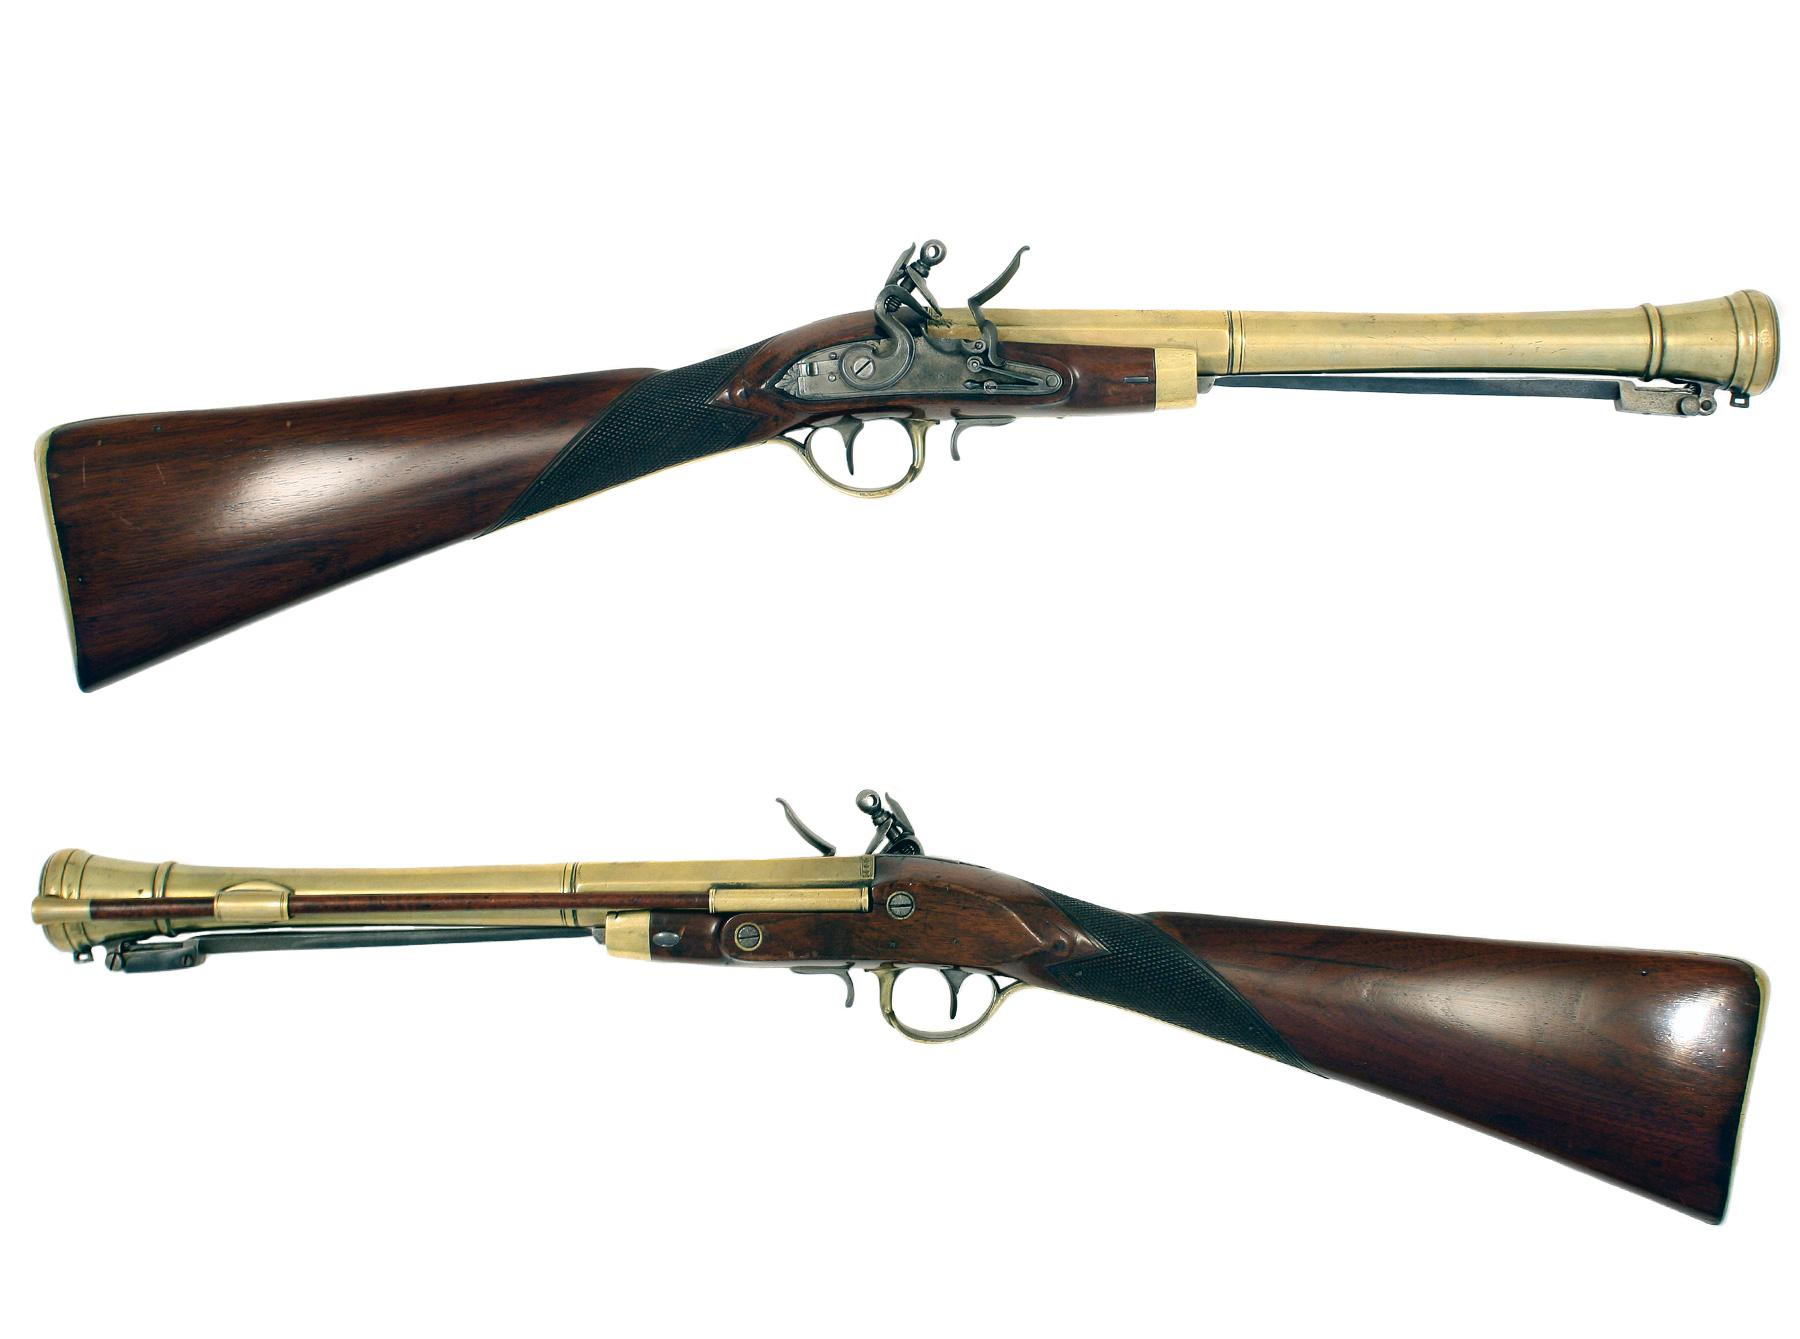 A Flintlock Blunderbuss by Aston of Manchester